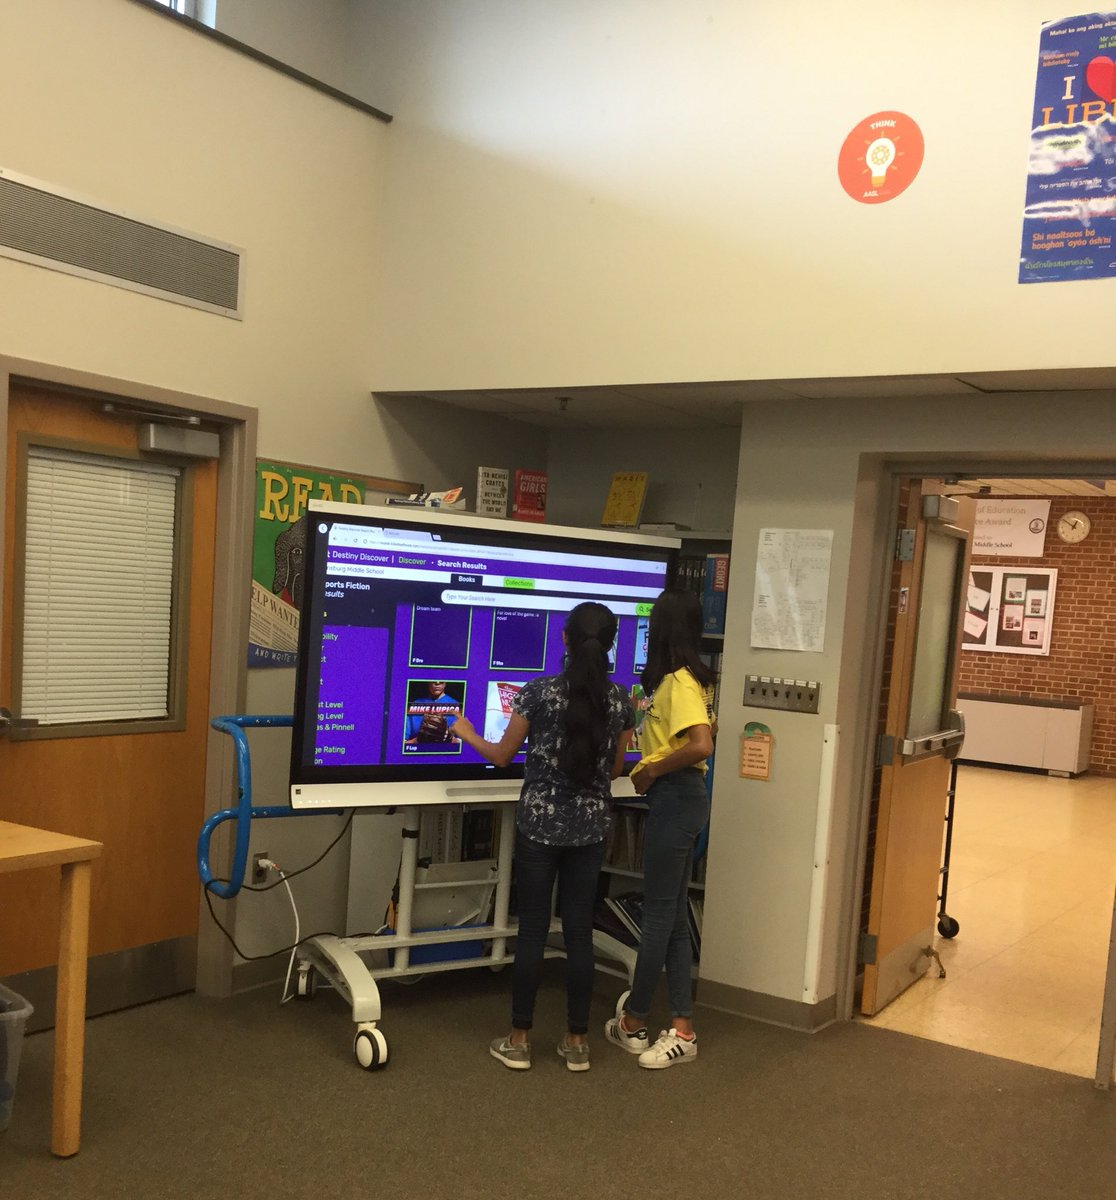 """Overheard - """"Hey, you should take a look at this book!"""" Saw - 2 seventh grade girls browsing the online catalog on the SMARTPanel during lunch. <a target='_blank' href='http://twitter.com/APSLibrarians'>@APSLibrarians</a> <a target='_blank' href='http://twitter.com/BoykinBryan'>@BoykinBryan</a> <a target='_blank' href='http://twitter.com/MsHanReads'>@MsHanReads</a> <a target='_blank' href='http://twitter.com/wmspta2017'>@wmspta2017</a> <a target='_blank' href='http://search.twitter.com/search?q=wmsreads'><a target='_blank' href='https://twitter.com/hashtag/wmsreads?src=hash'>#wmsreads</a></a> <a target='_blank' href='https://t.co/k8lToD0HWG'>https://t.co/k8lToD0HWG</a>"""